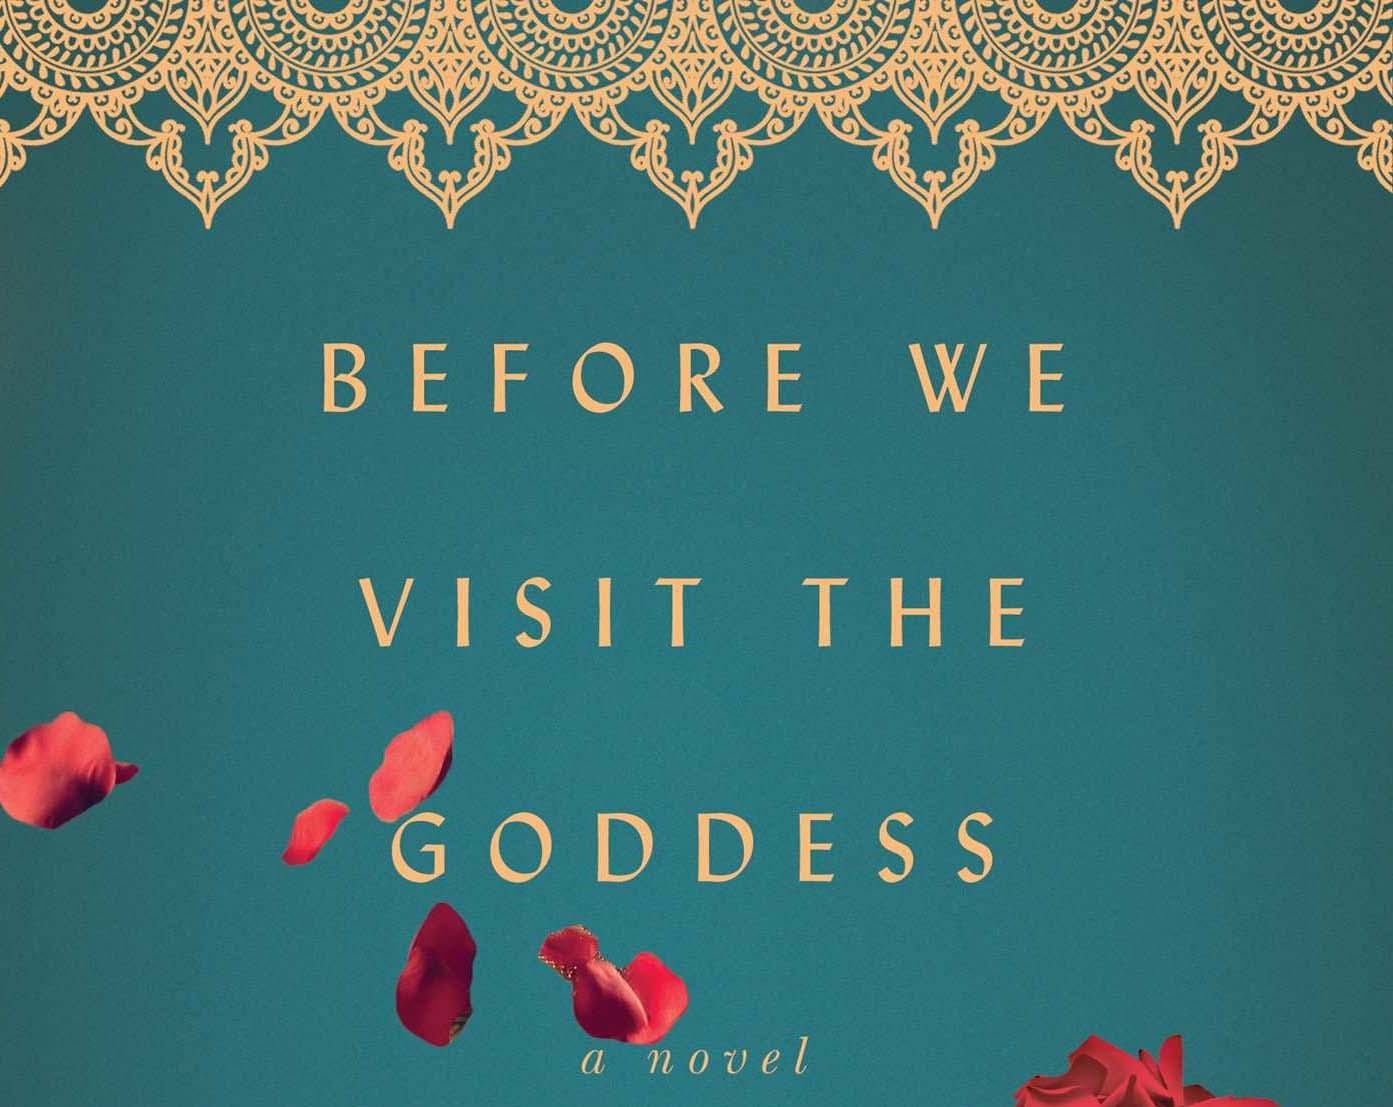 Chitra Bannerjee Divakaruni, books, author, Indian, Before we visit the goddess